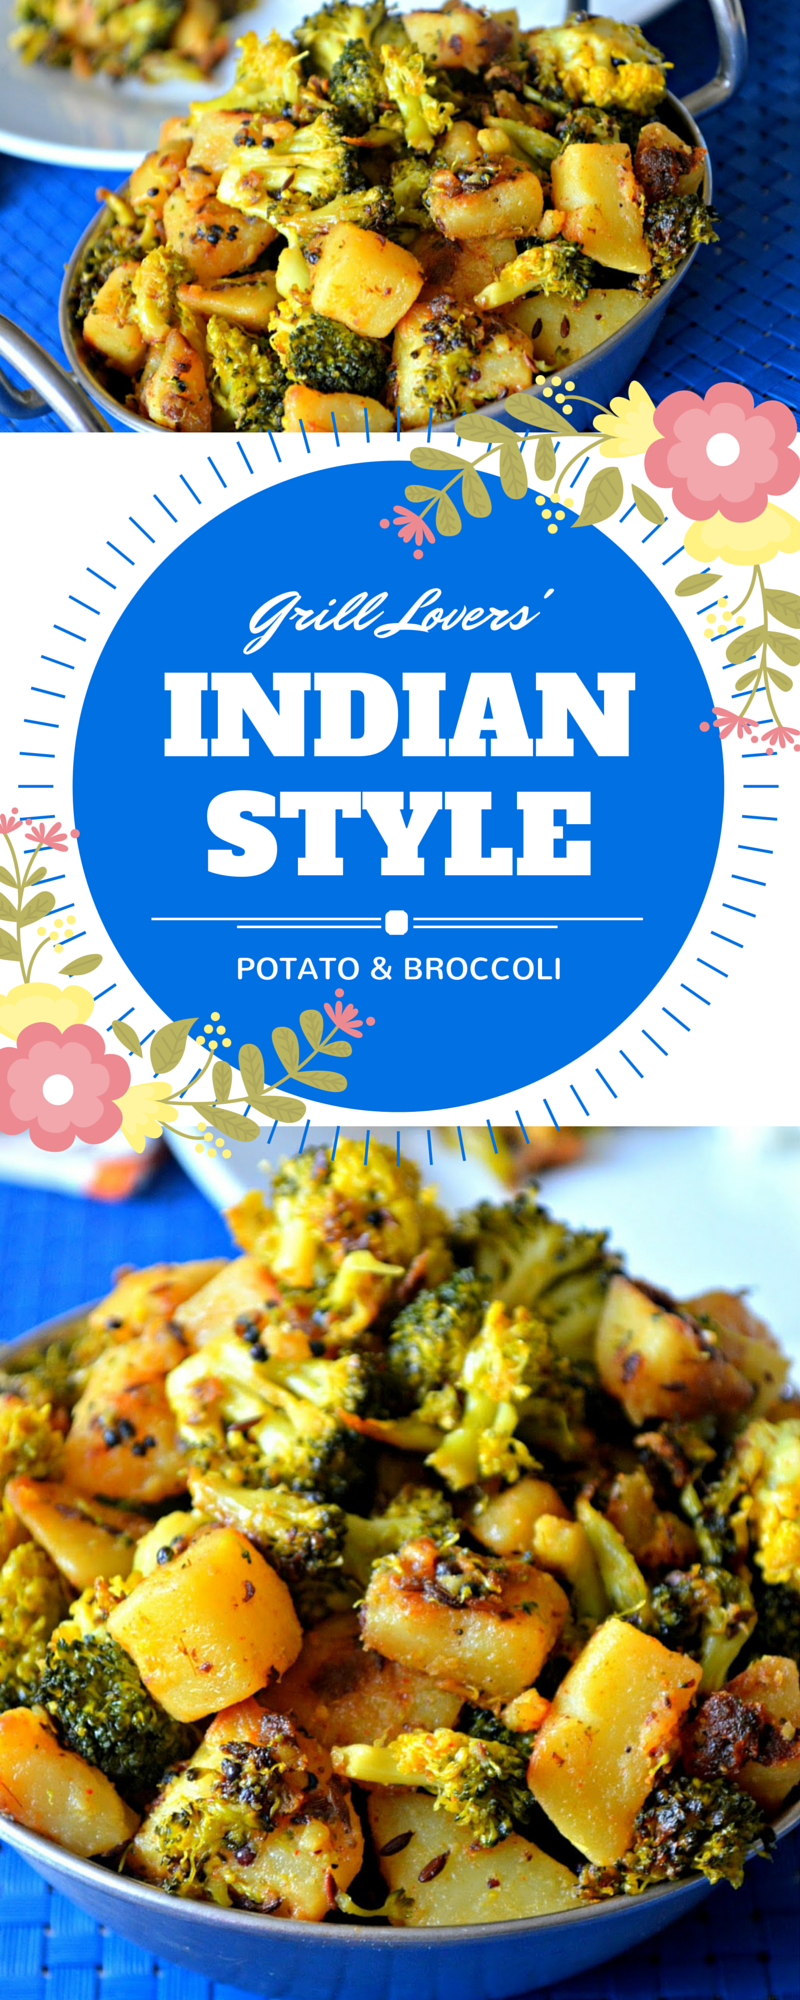 Indian Style Potato And Broccoli Recipe Ready In About 15 Minutes